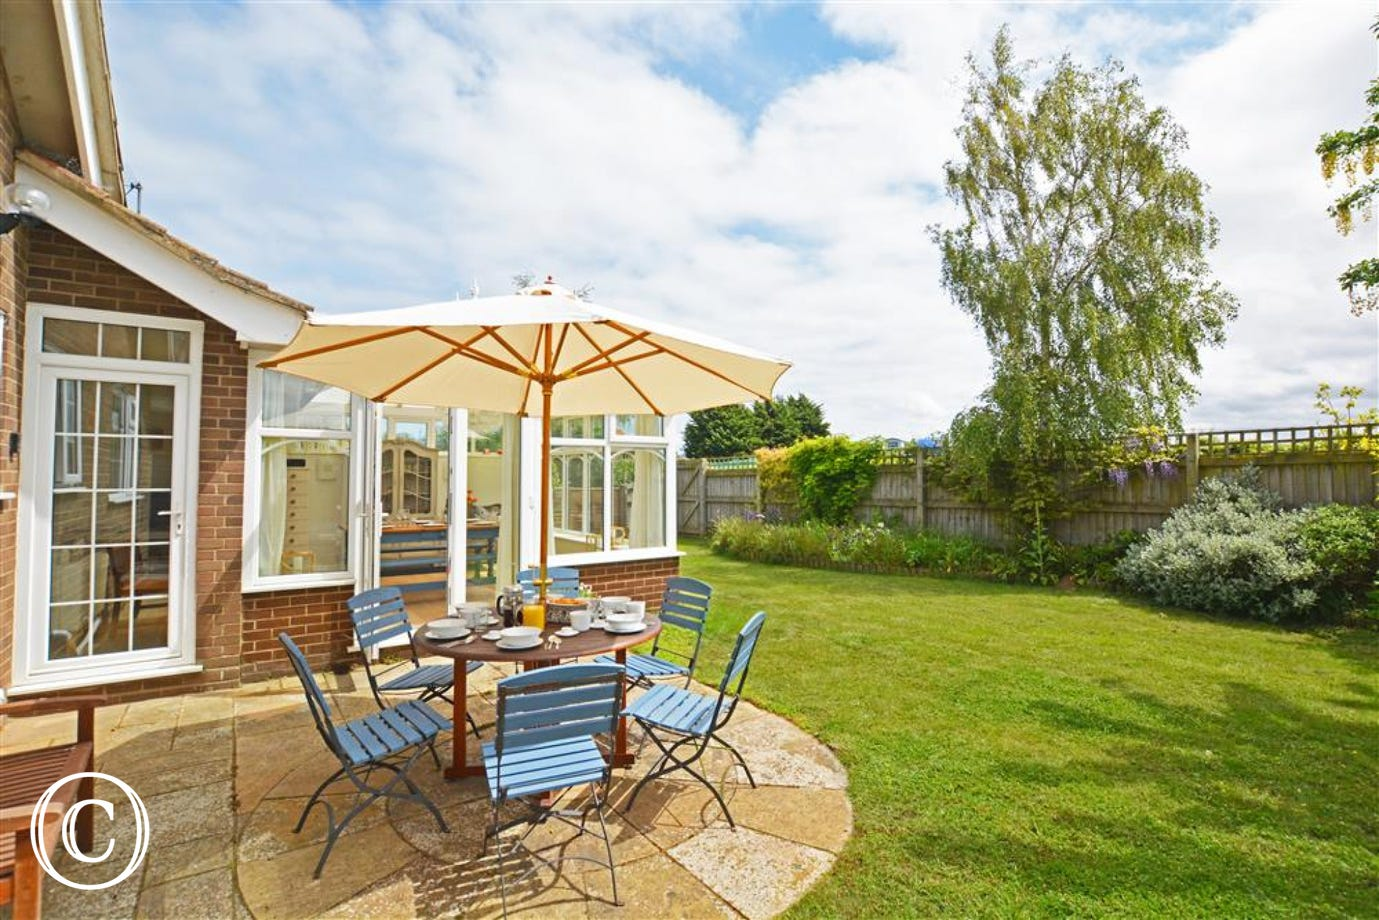 Lovely lawned garden with patio area